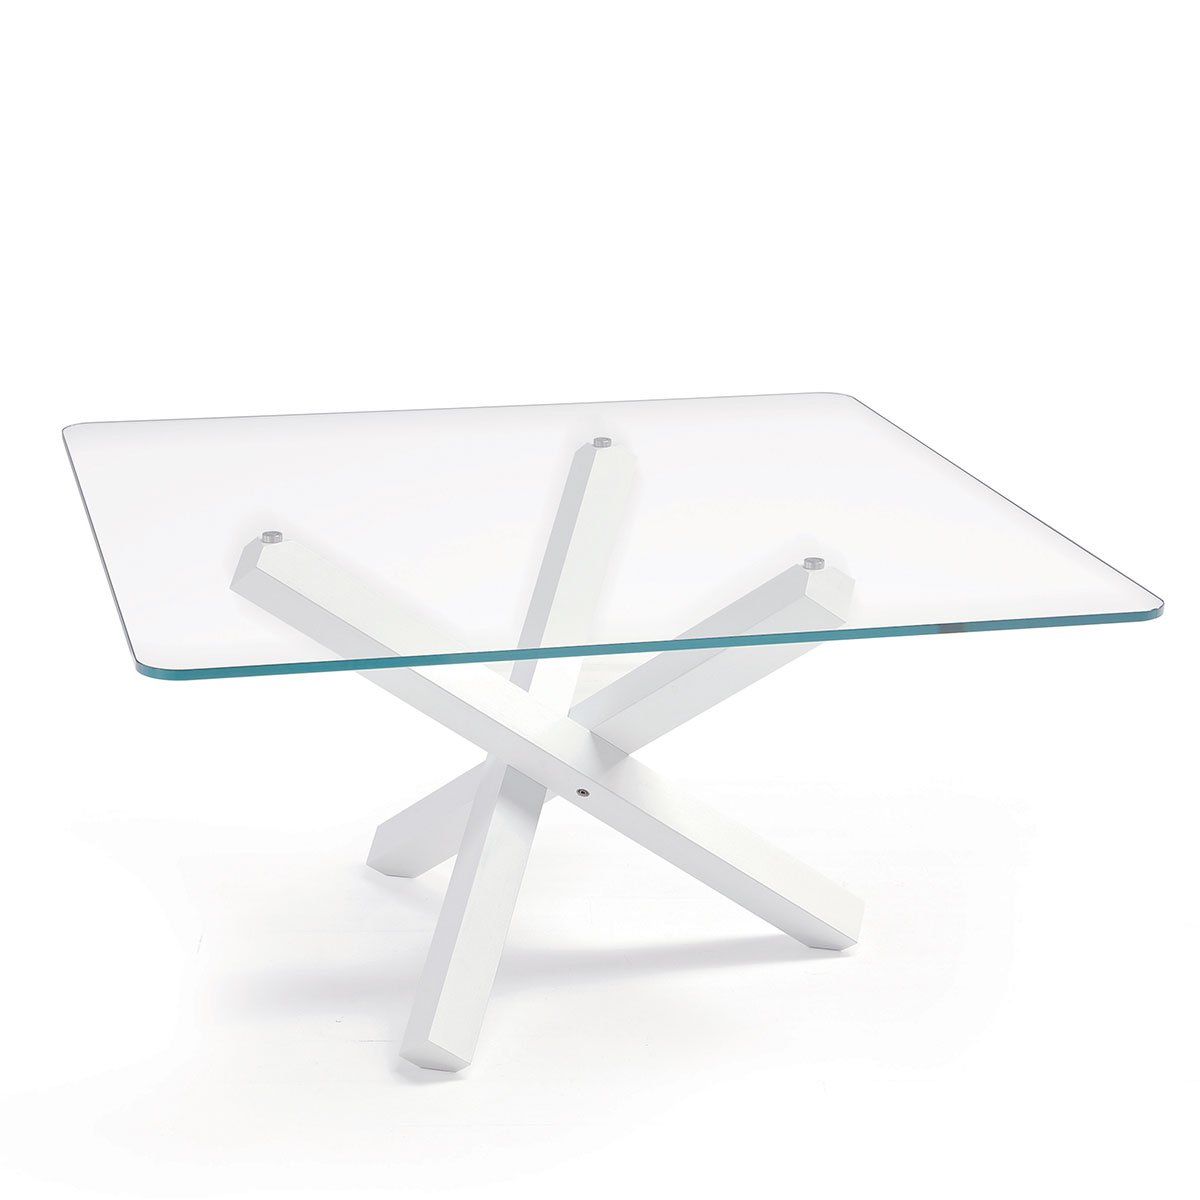 aikido glass dining table. sovet italia aikido dining table  klarity glass furniture